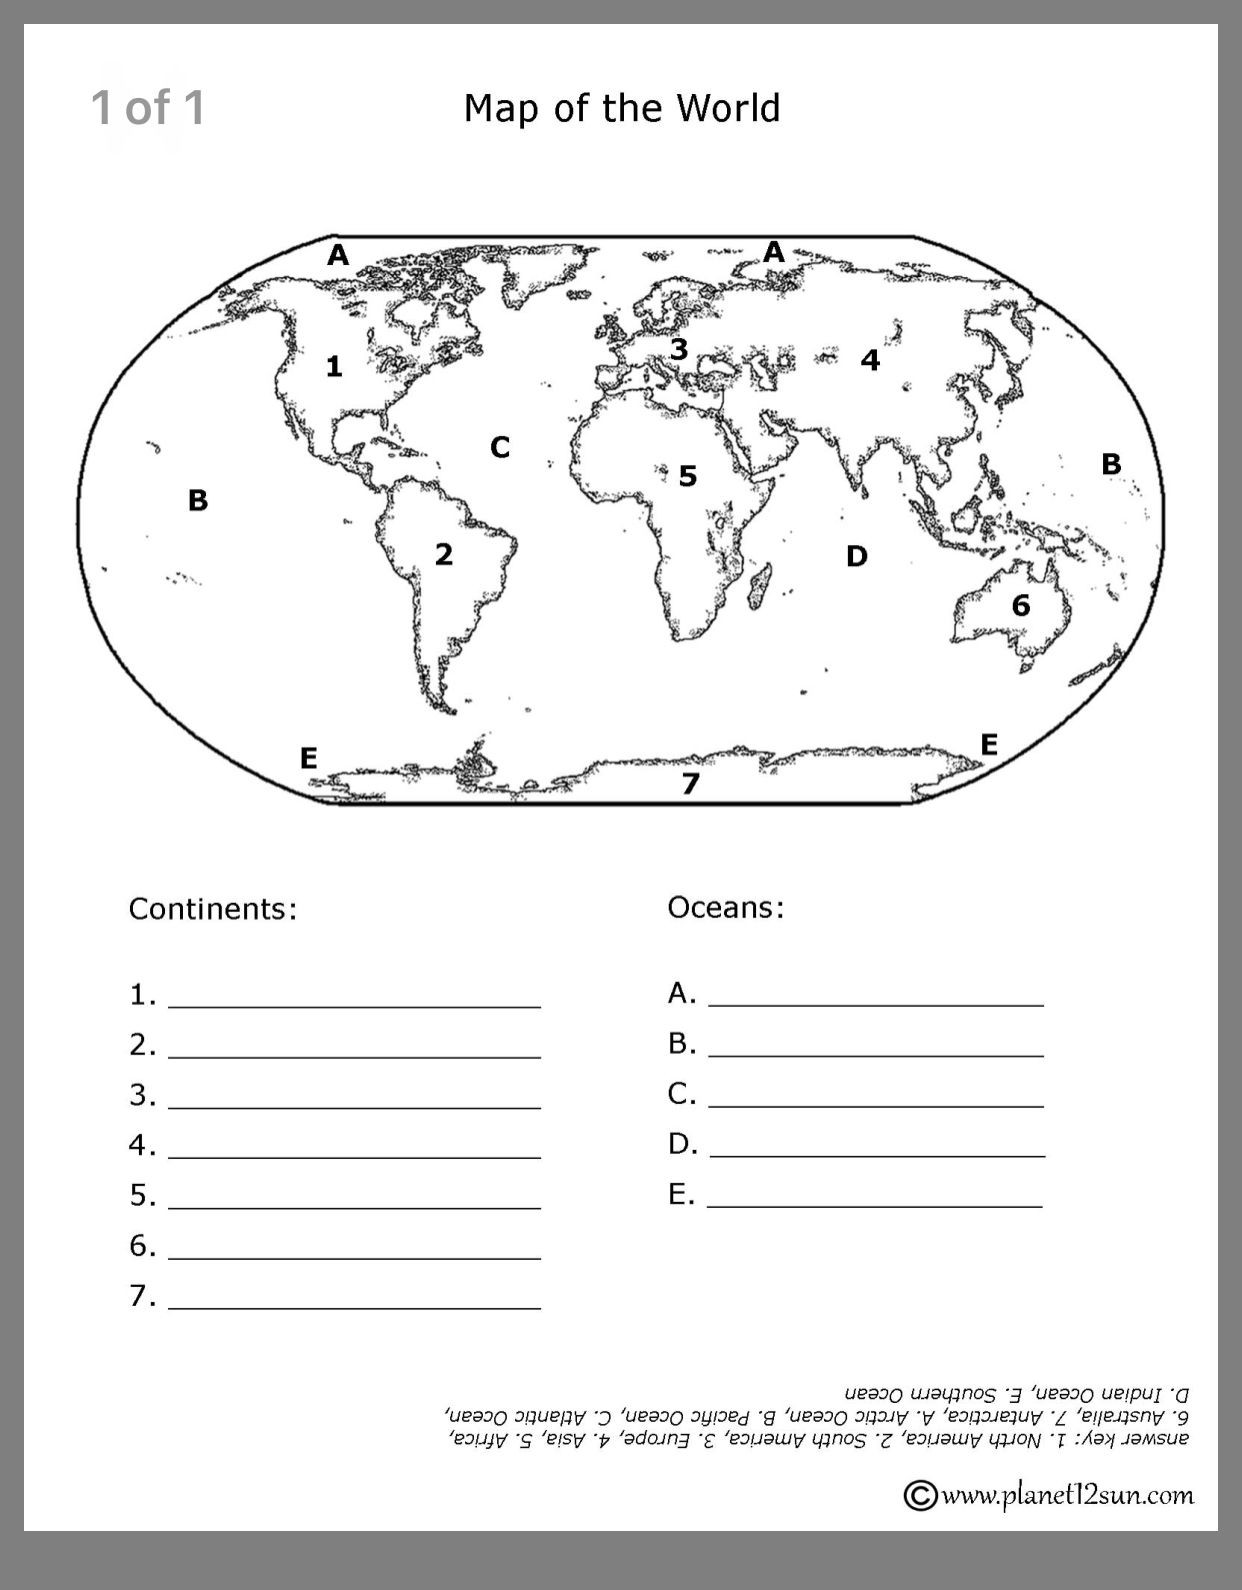 Continents and Oceans Printable Worksheets Pin by Dawn Tran On Geography for Ava with Images